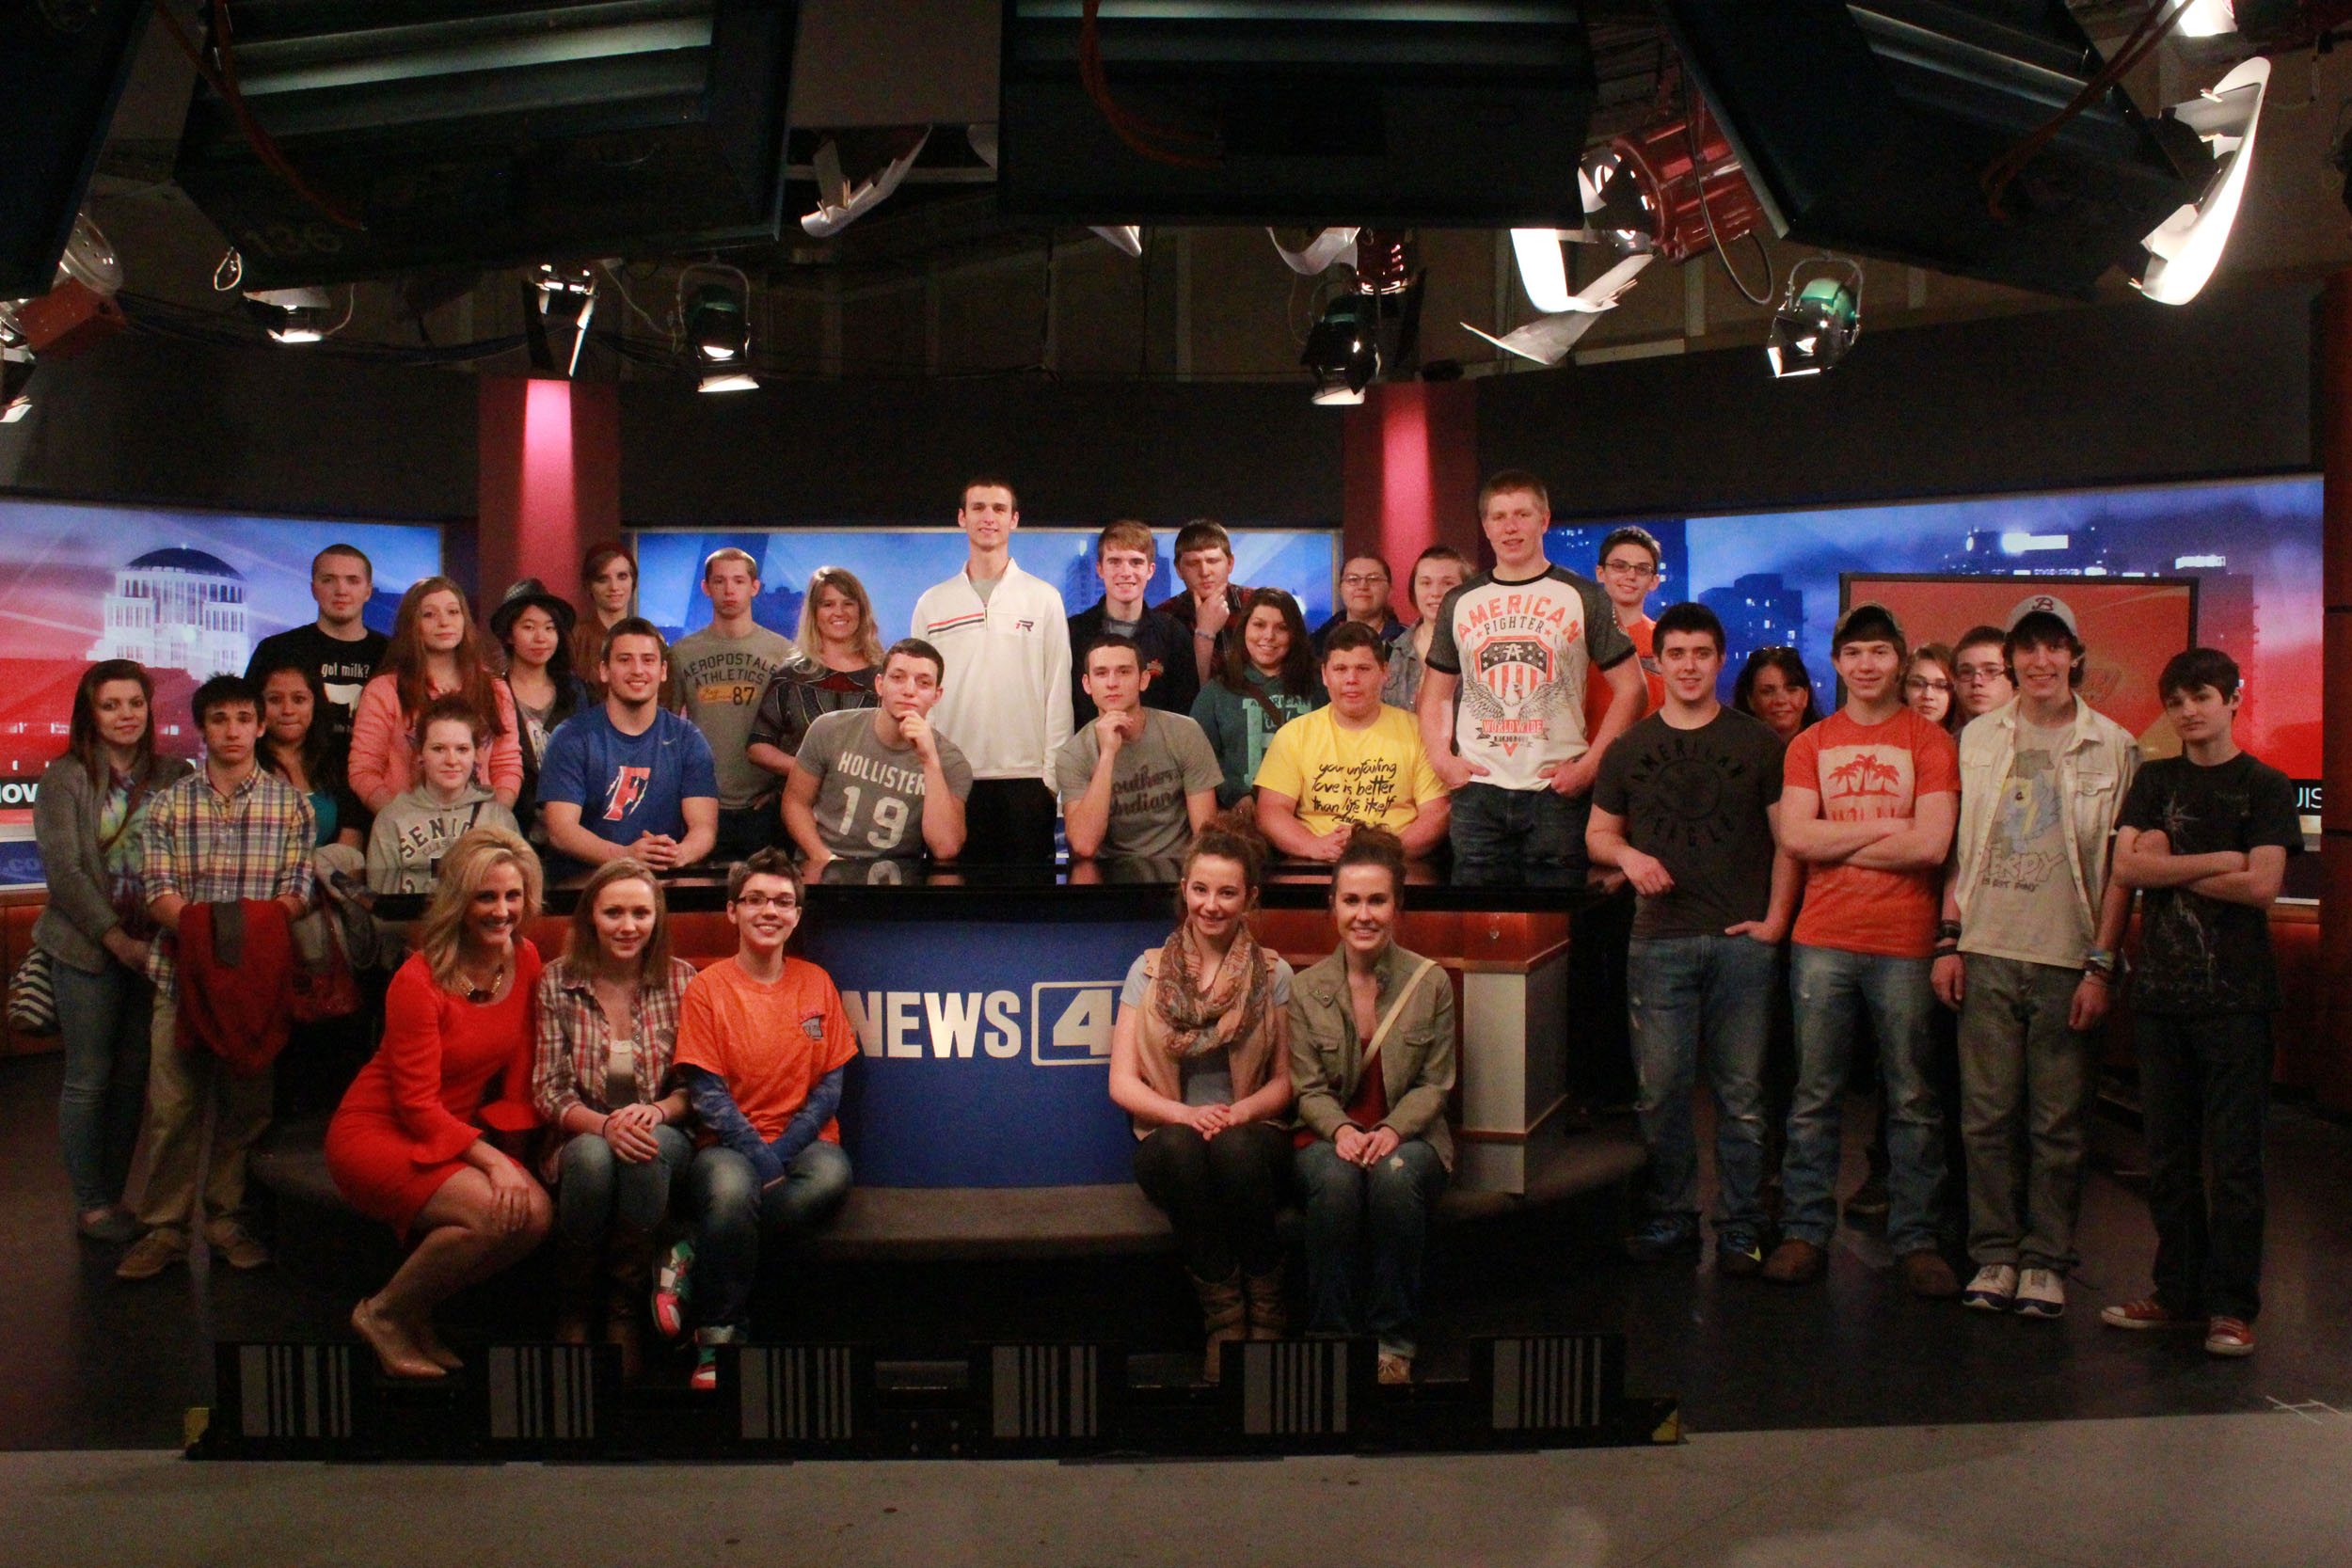 Video, Publications students to tour KMOV studios with former student